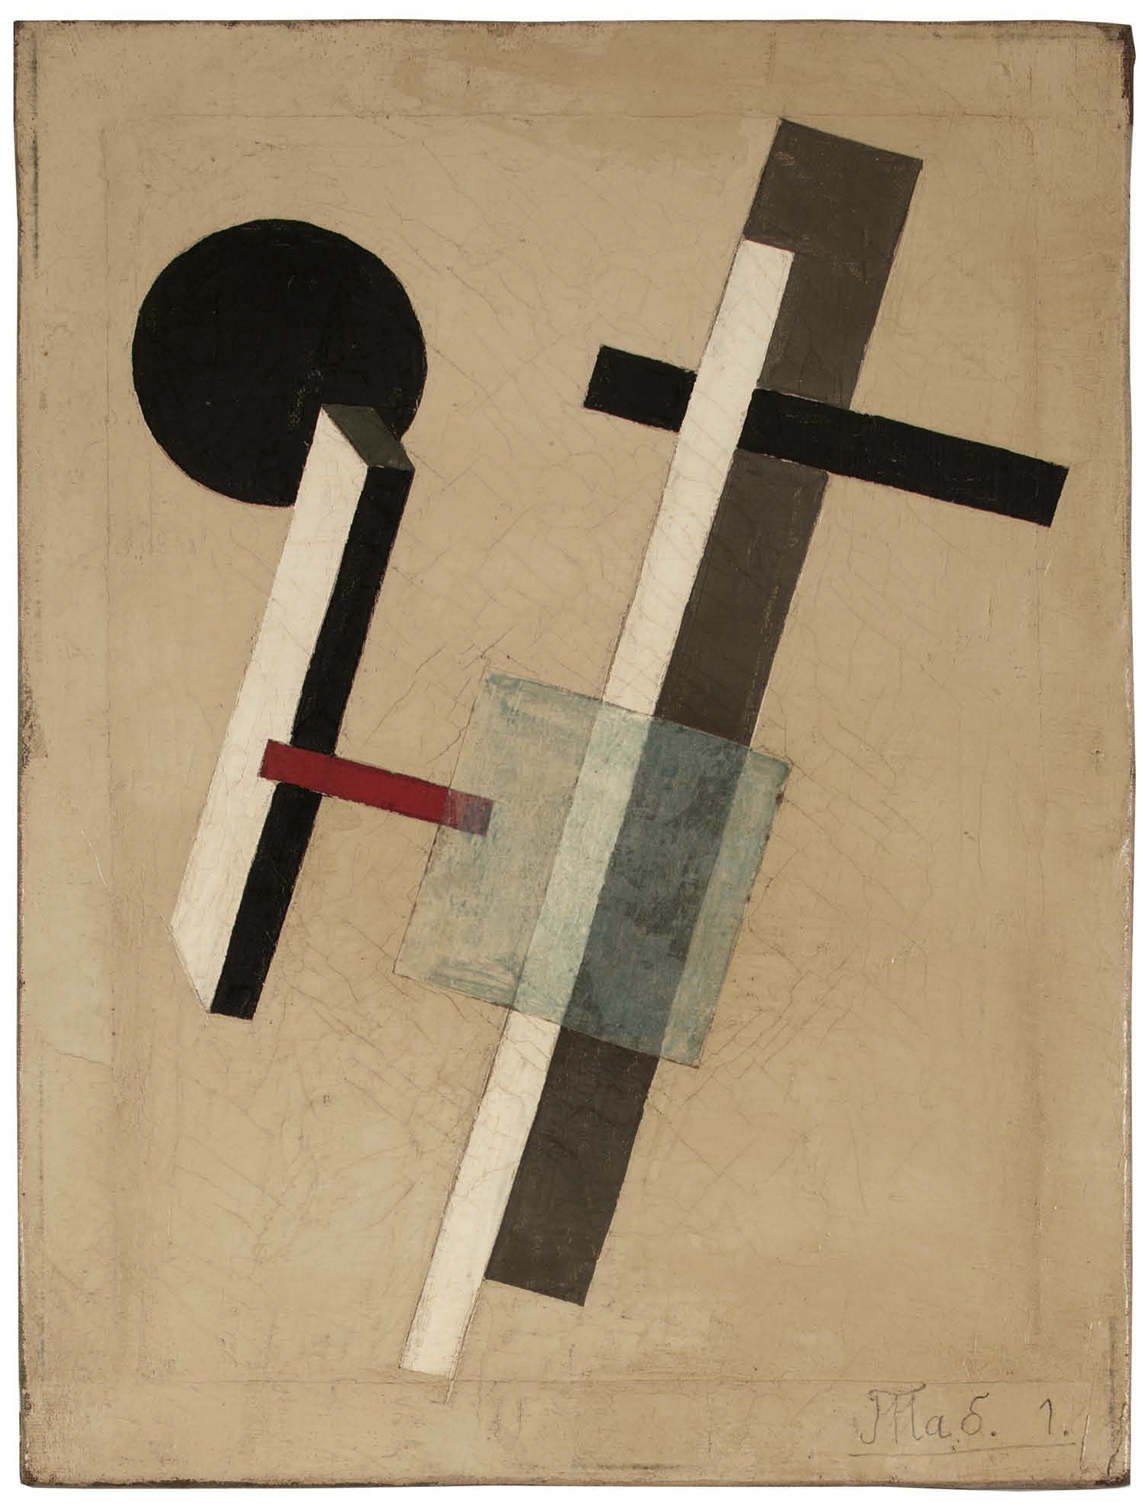 """Unsigned. Unattributed.In the style of El Lissitzky. Text in Russian, lower left front, translates to """"Tab .1"""". Oil and collage on canvas. 40 x 30 cm."""